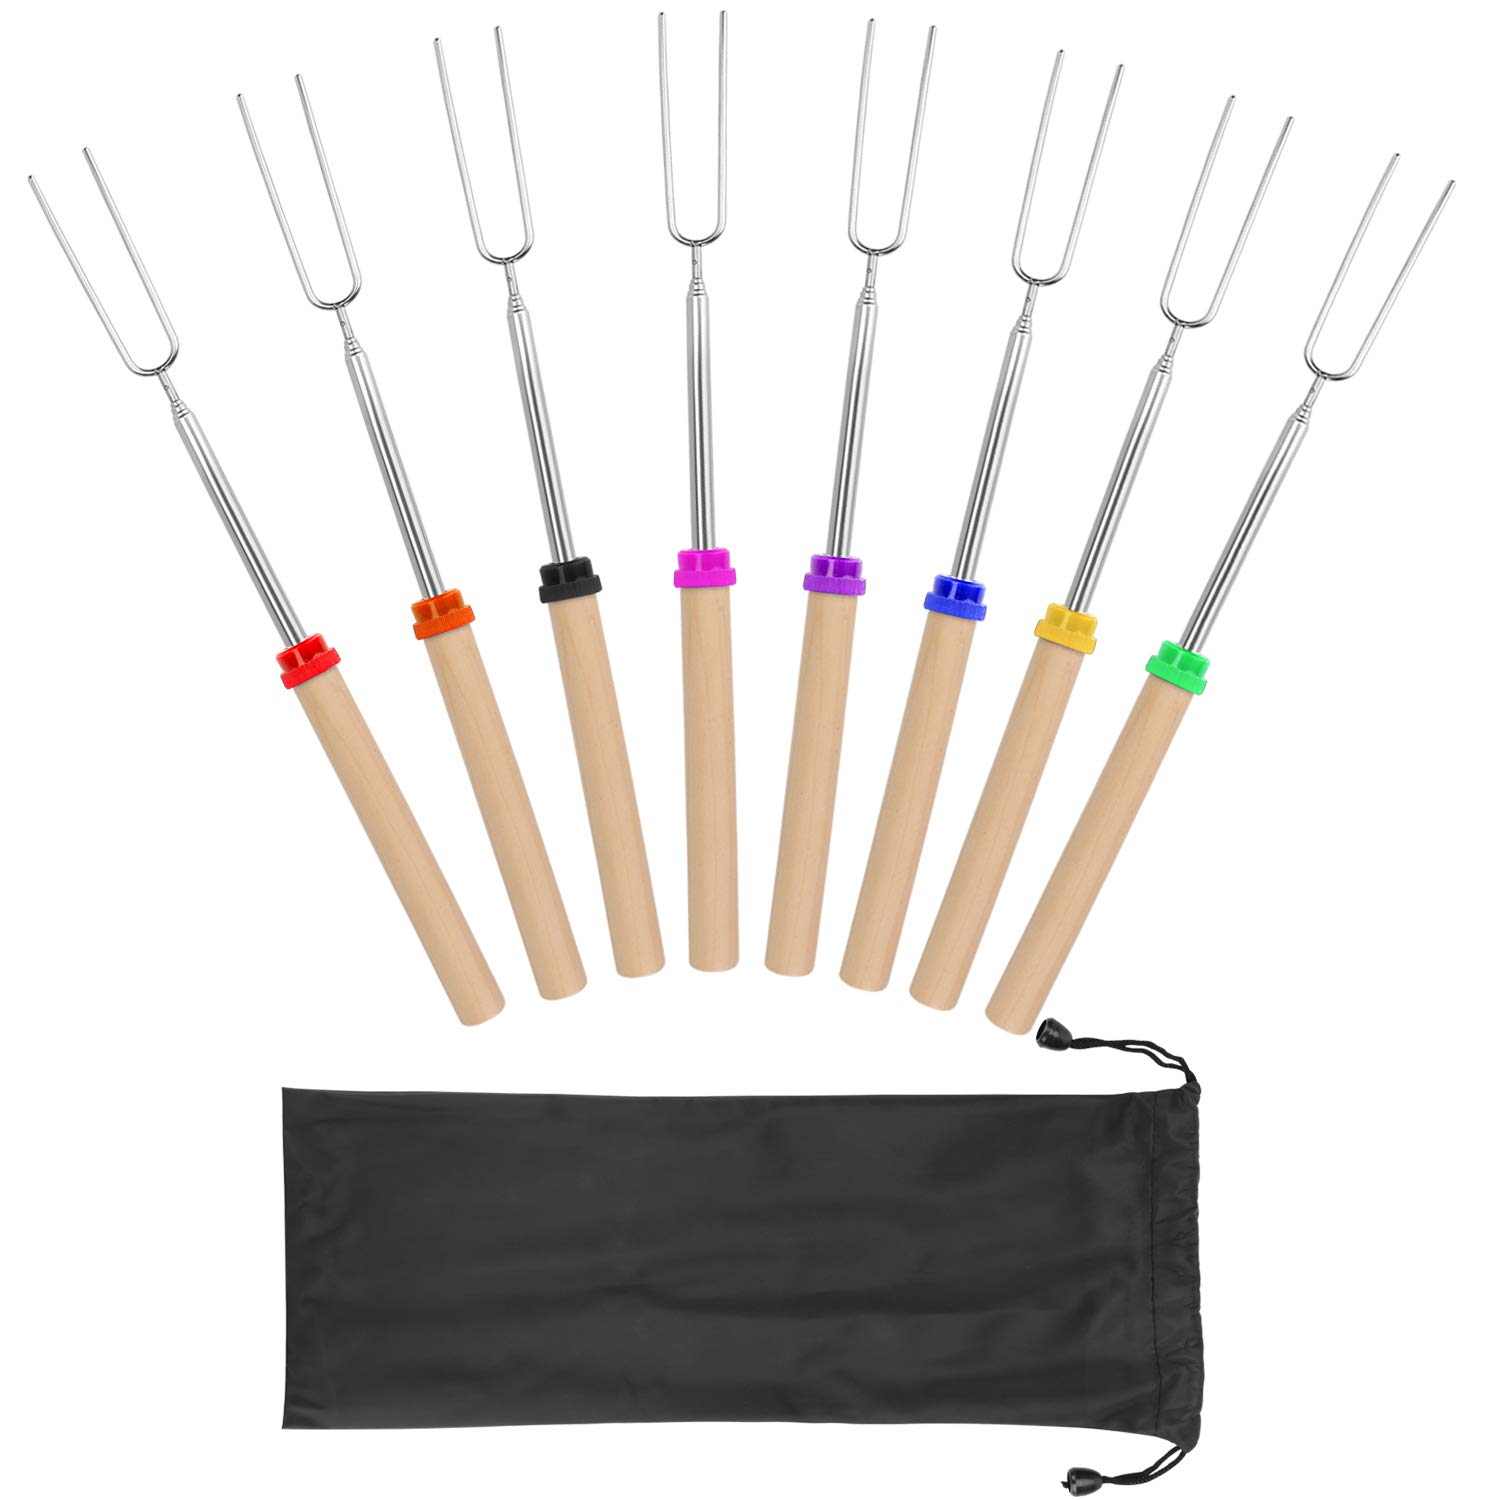 Marshmallow Roasting Sticks with Wooden Handle Extendable Forks Set of 8 Pcs Telescoping Smores Skewers for Campfire, Firepit, and Sausage BBQ, 32 Inch